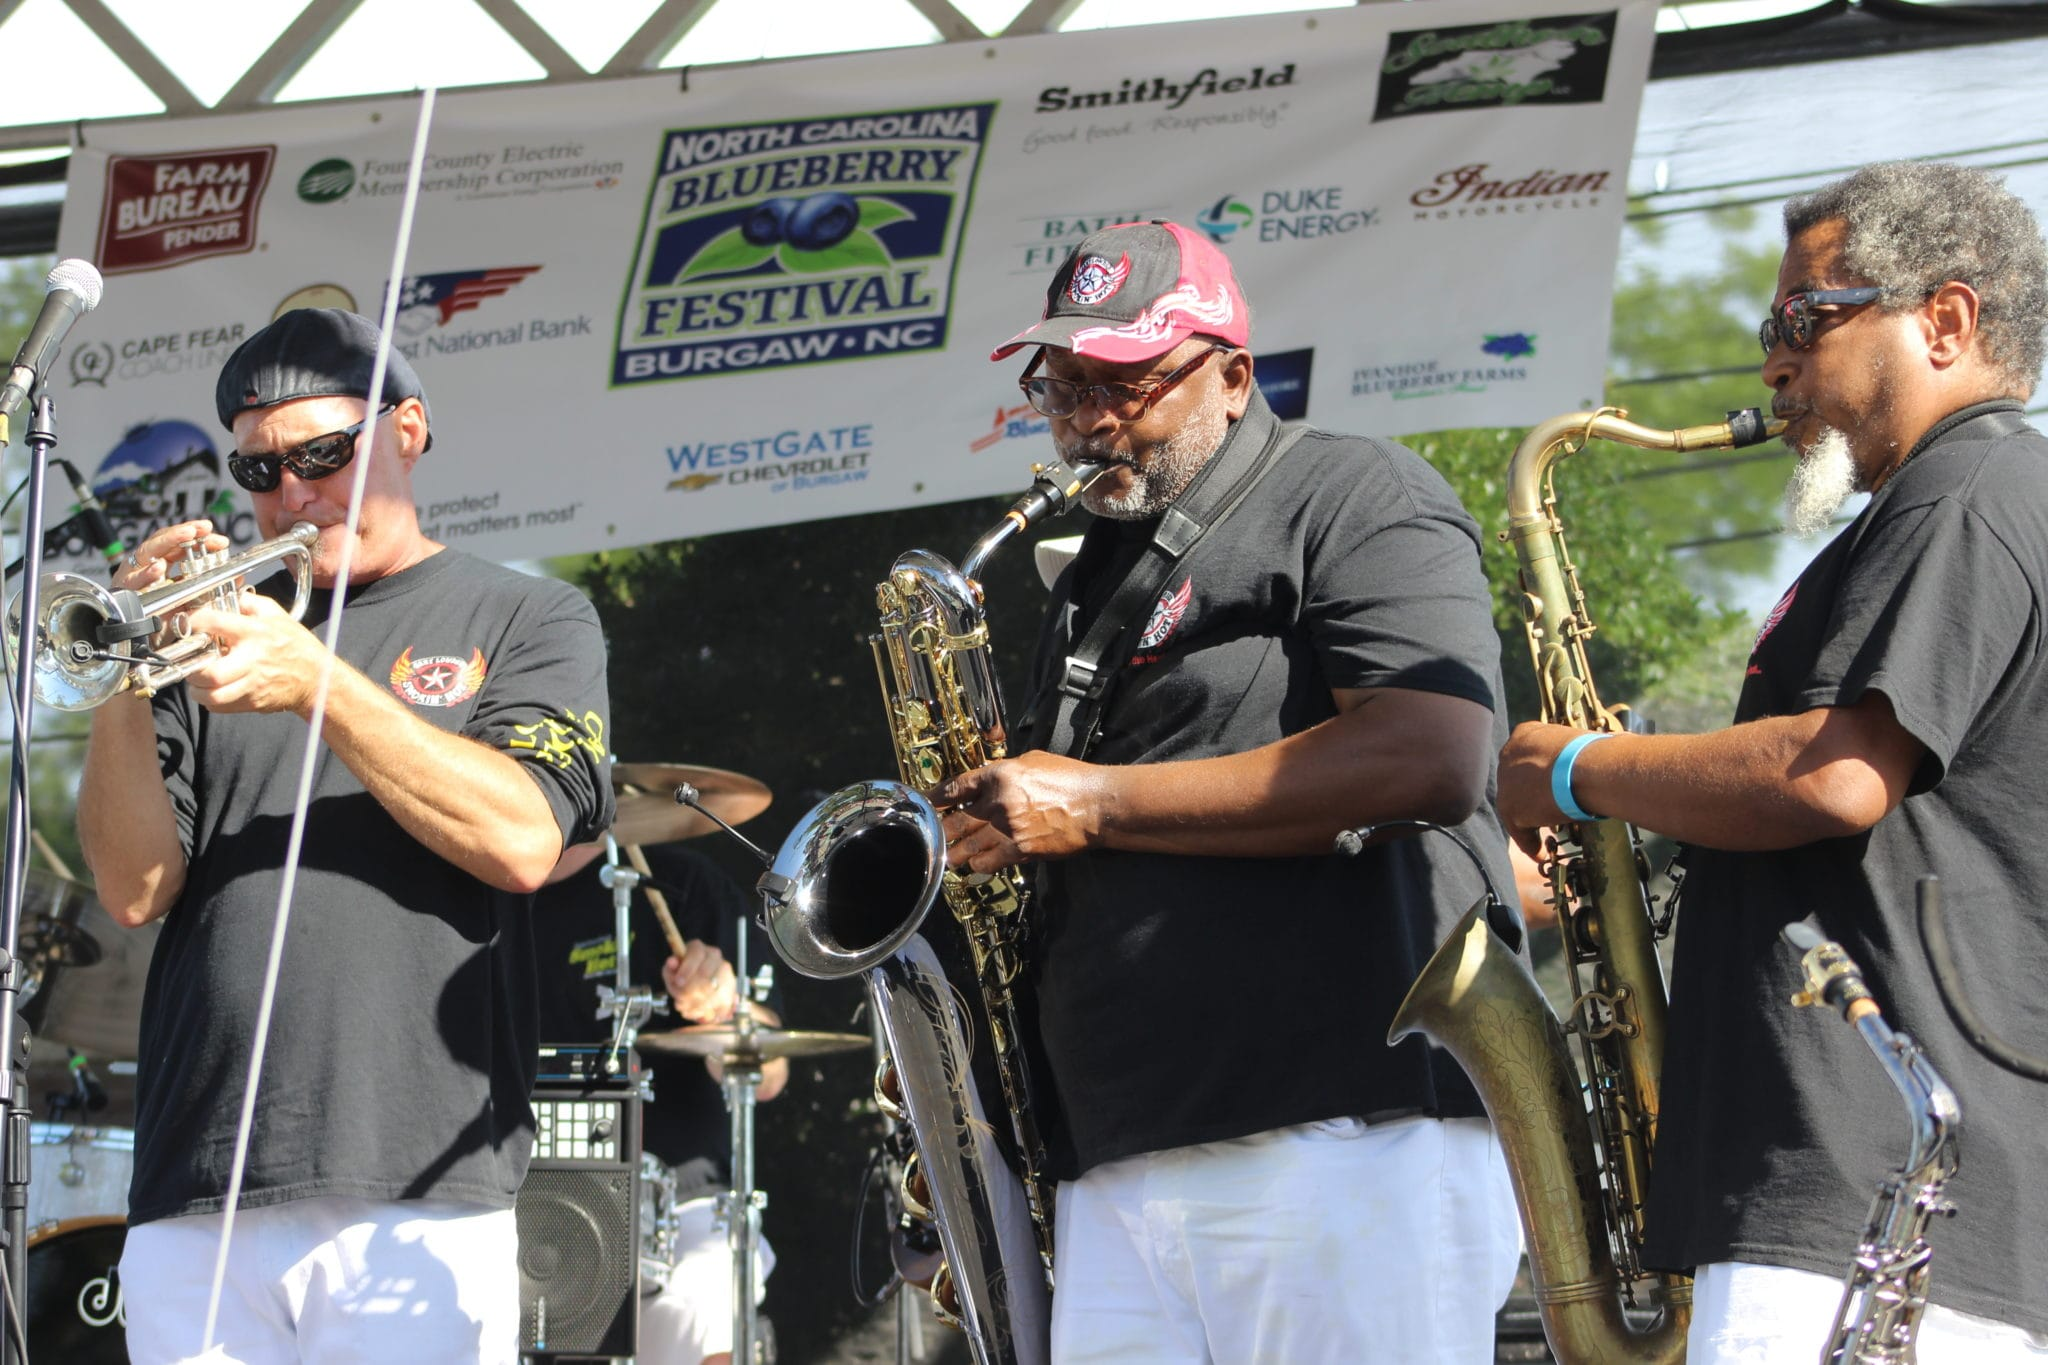 Band performs at the Blueberry Festival in Burgaw, NC